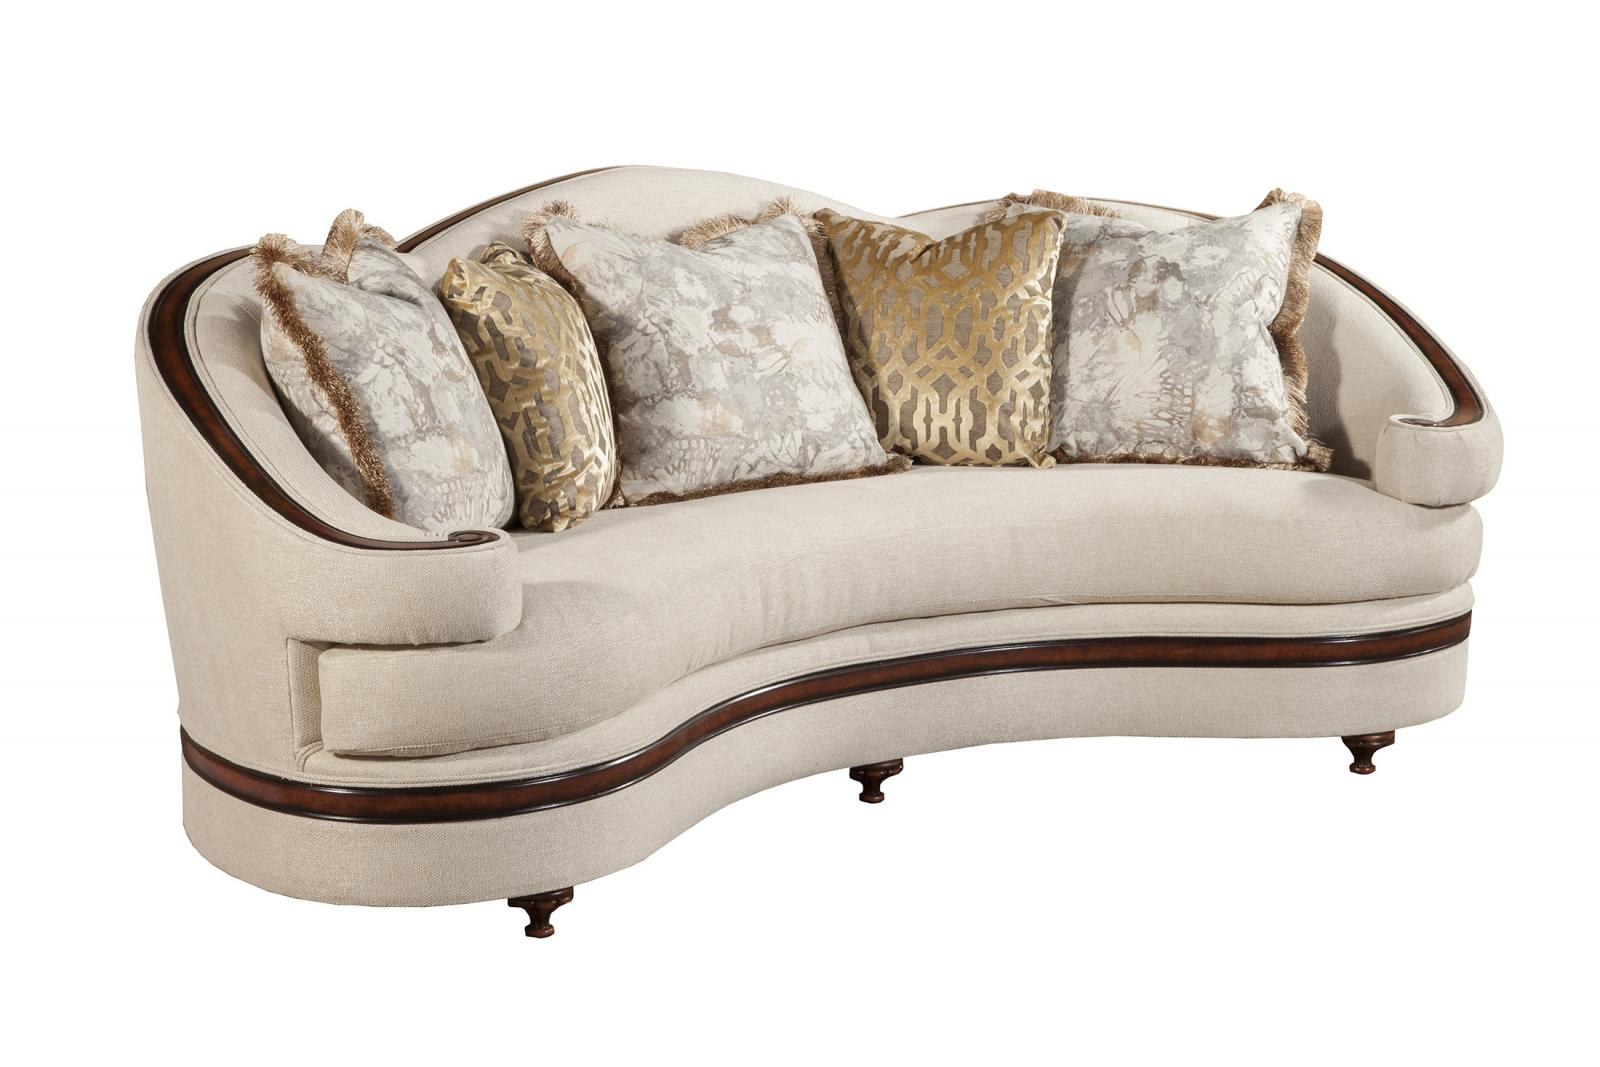 Classic, Traditional Dark Brown,  Beige Chenille and Fabric, Wood, Solid Hardwood Sofa 1 pcs Emma  by Benneti